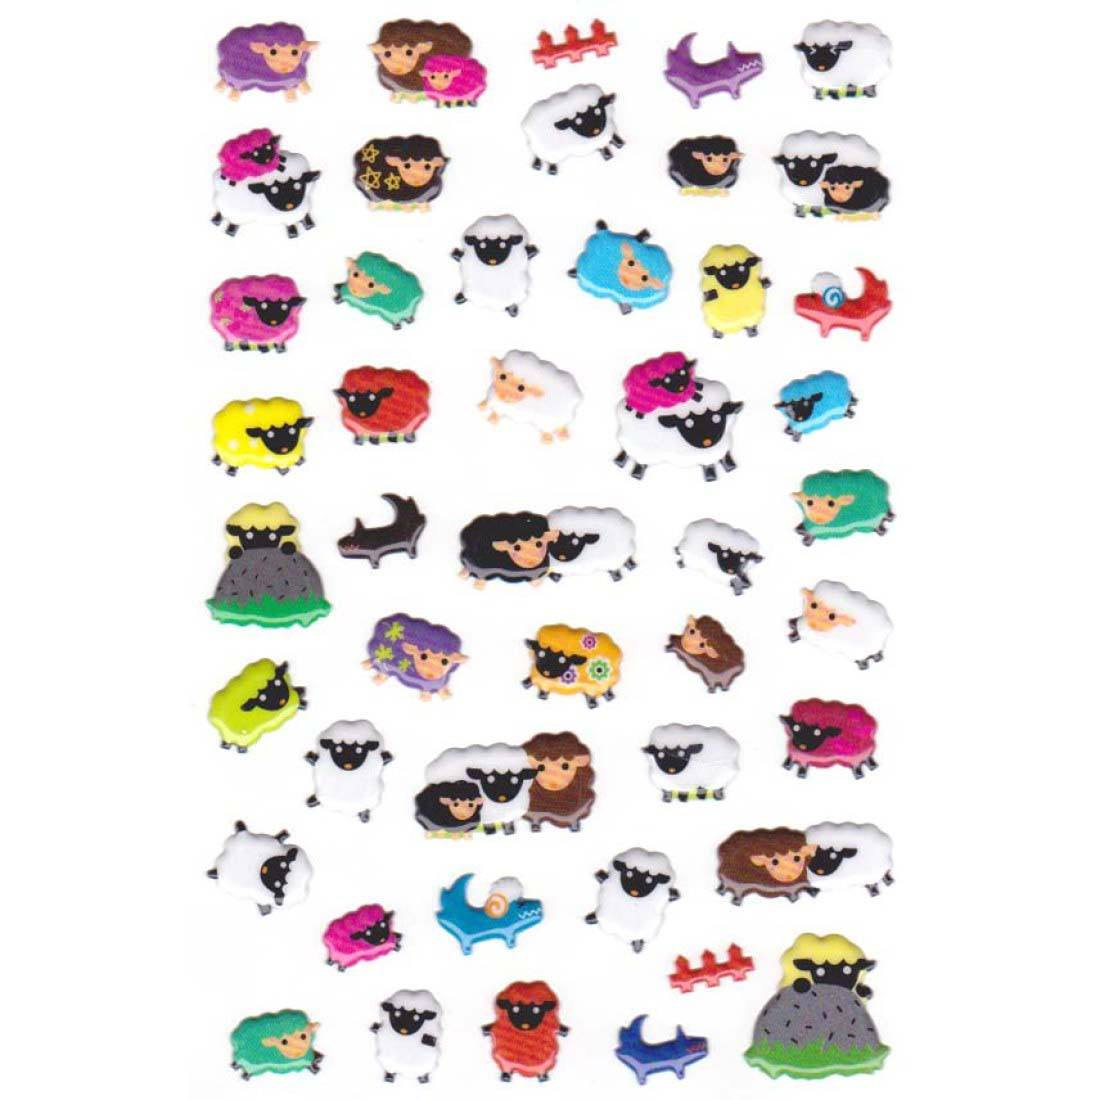 Black and White Sheep Shaped Animal Themed Stickers